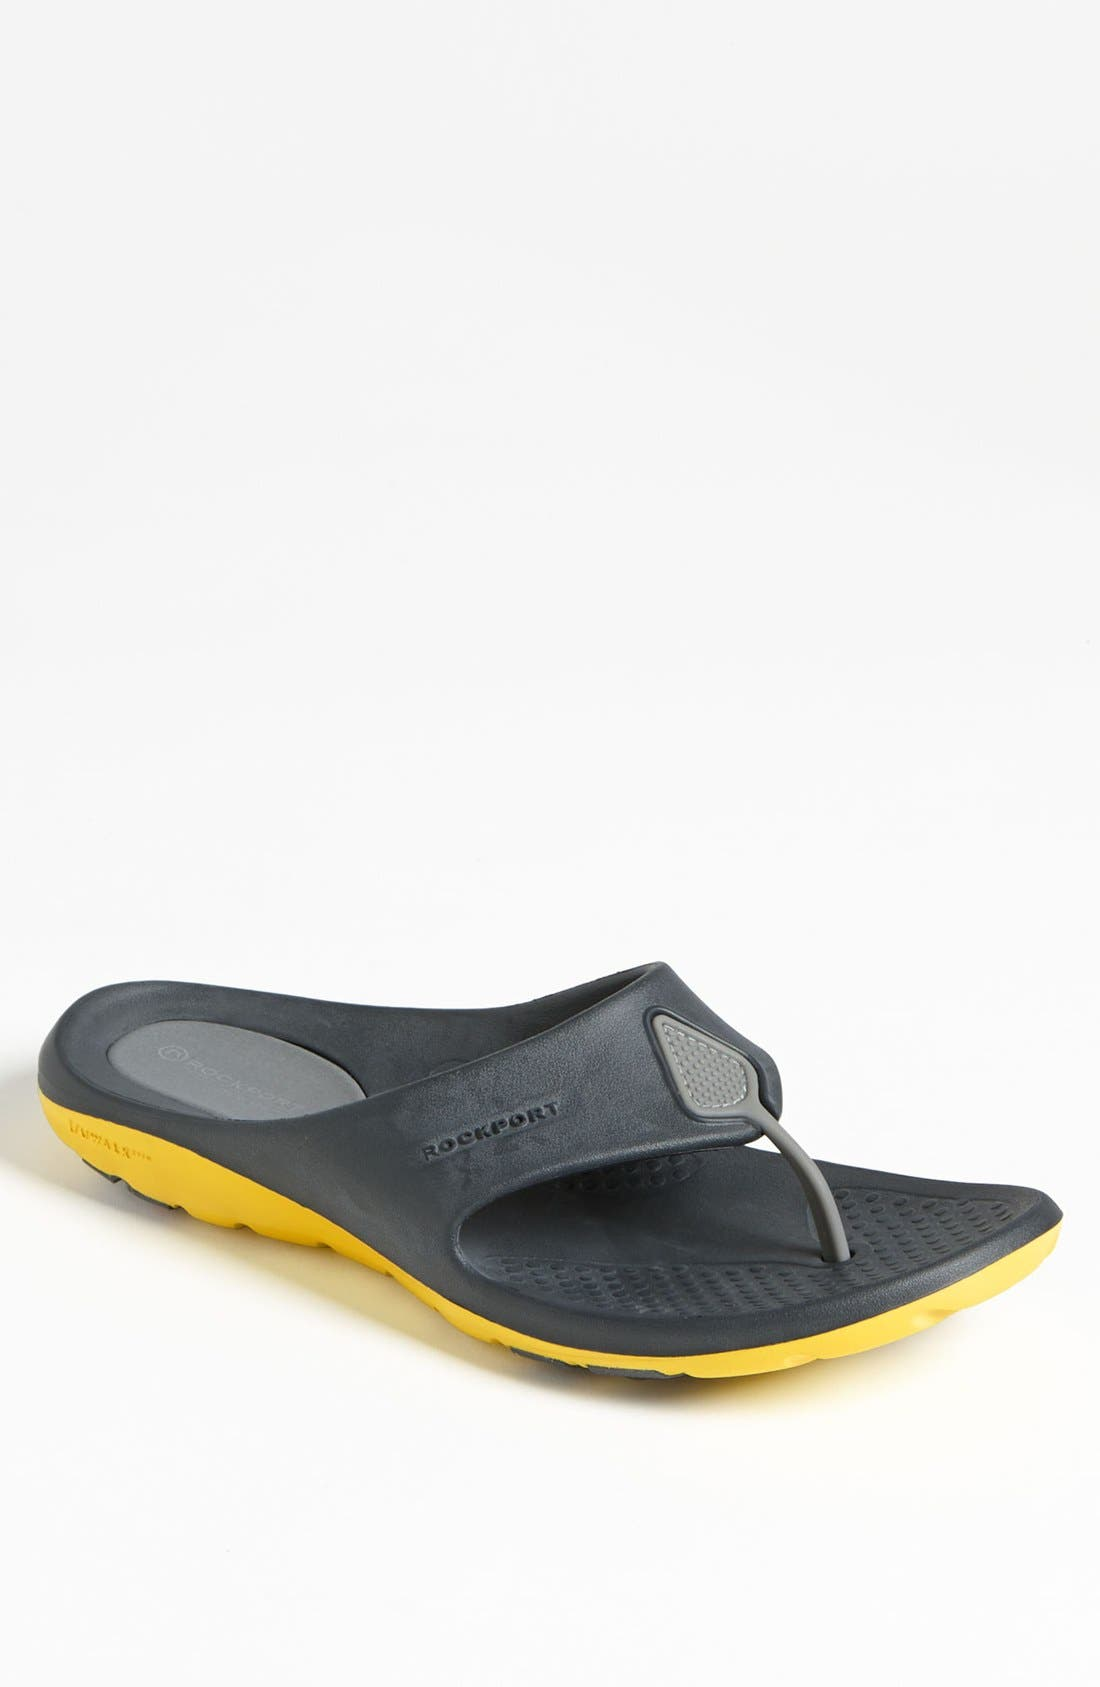 Alternate Image 1 Selected - Rockport 'TruWalk - Zero' Flip Flop (Men)